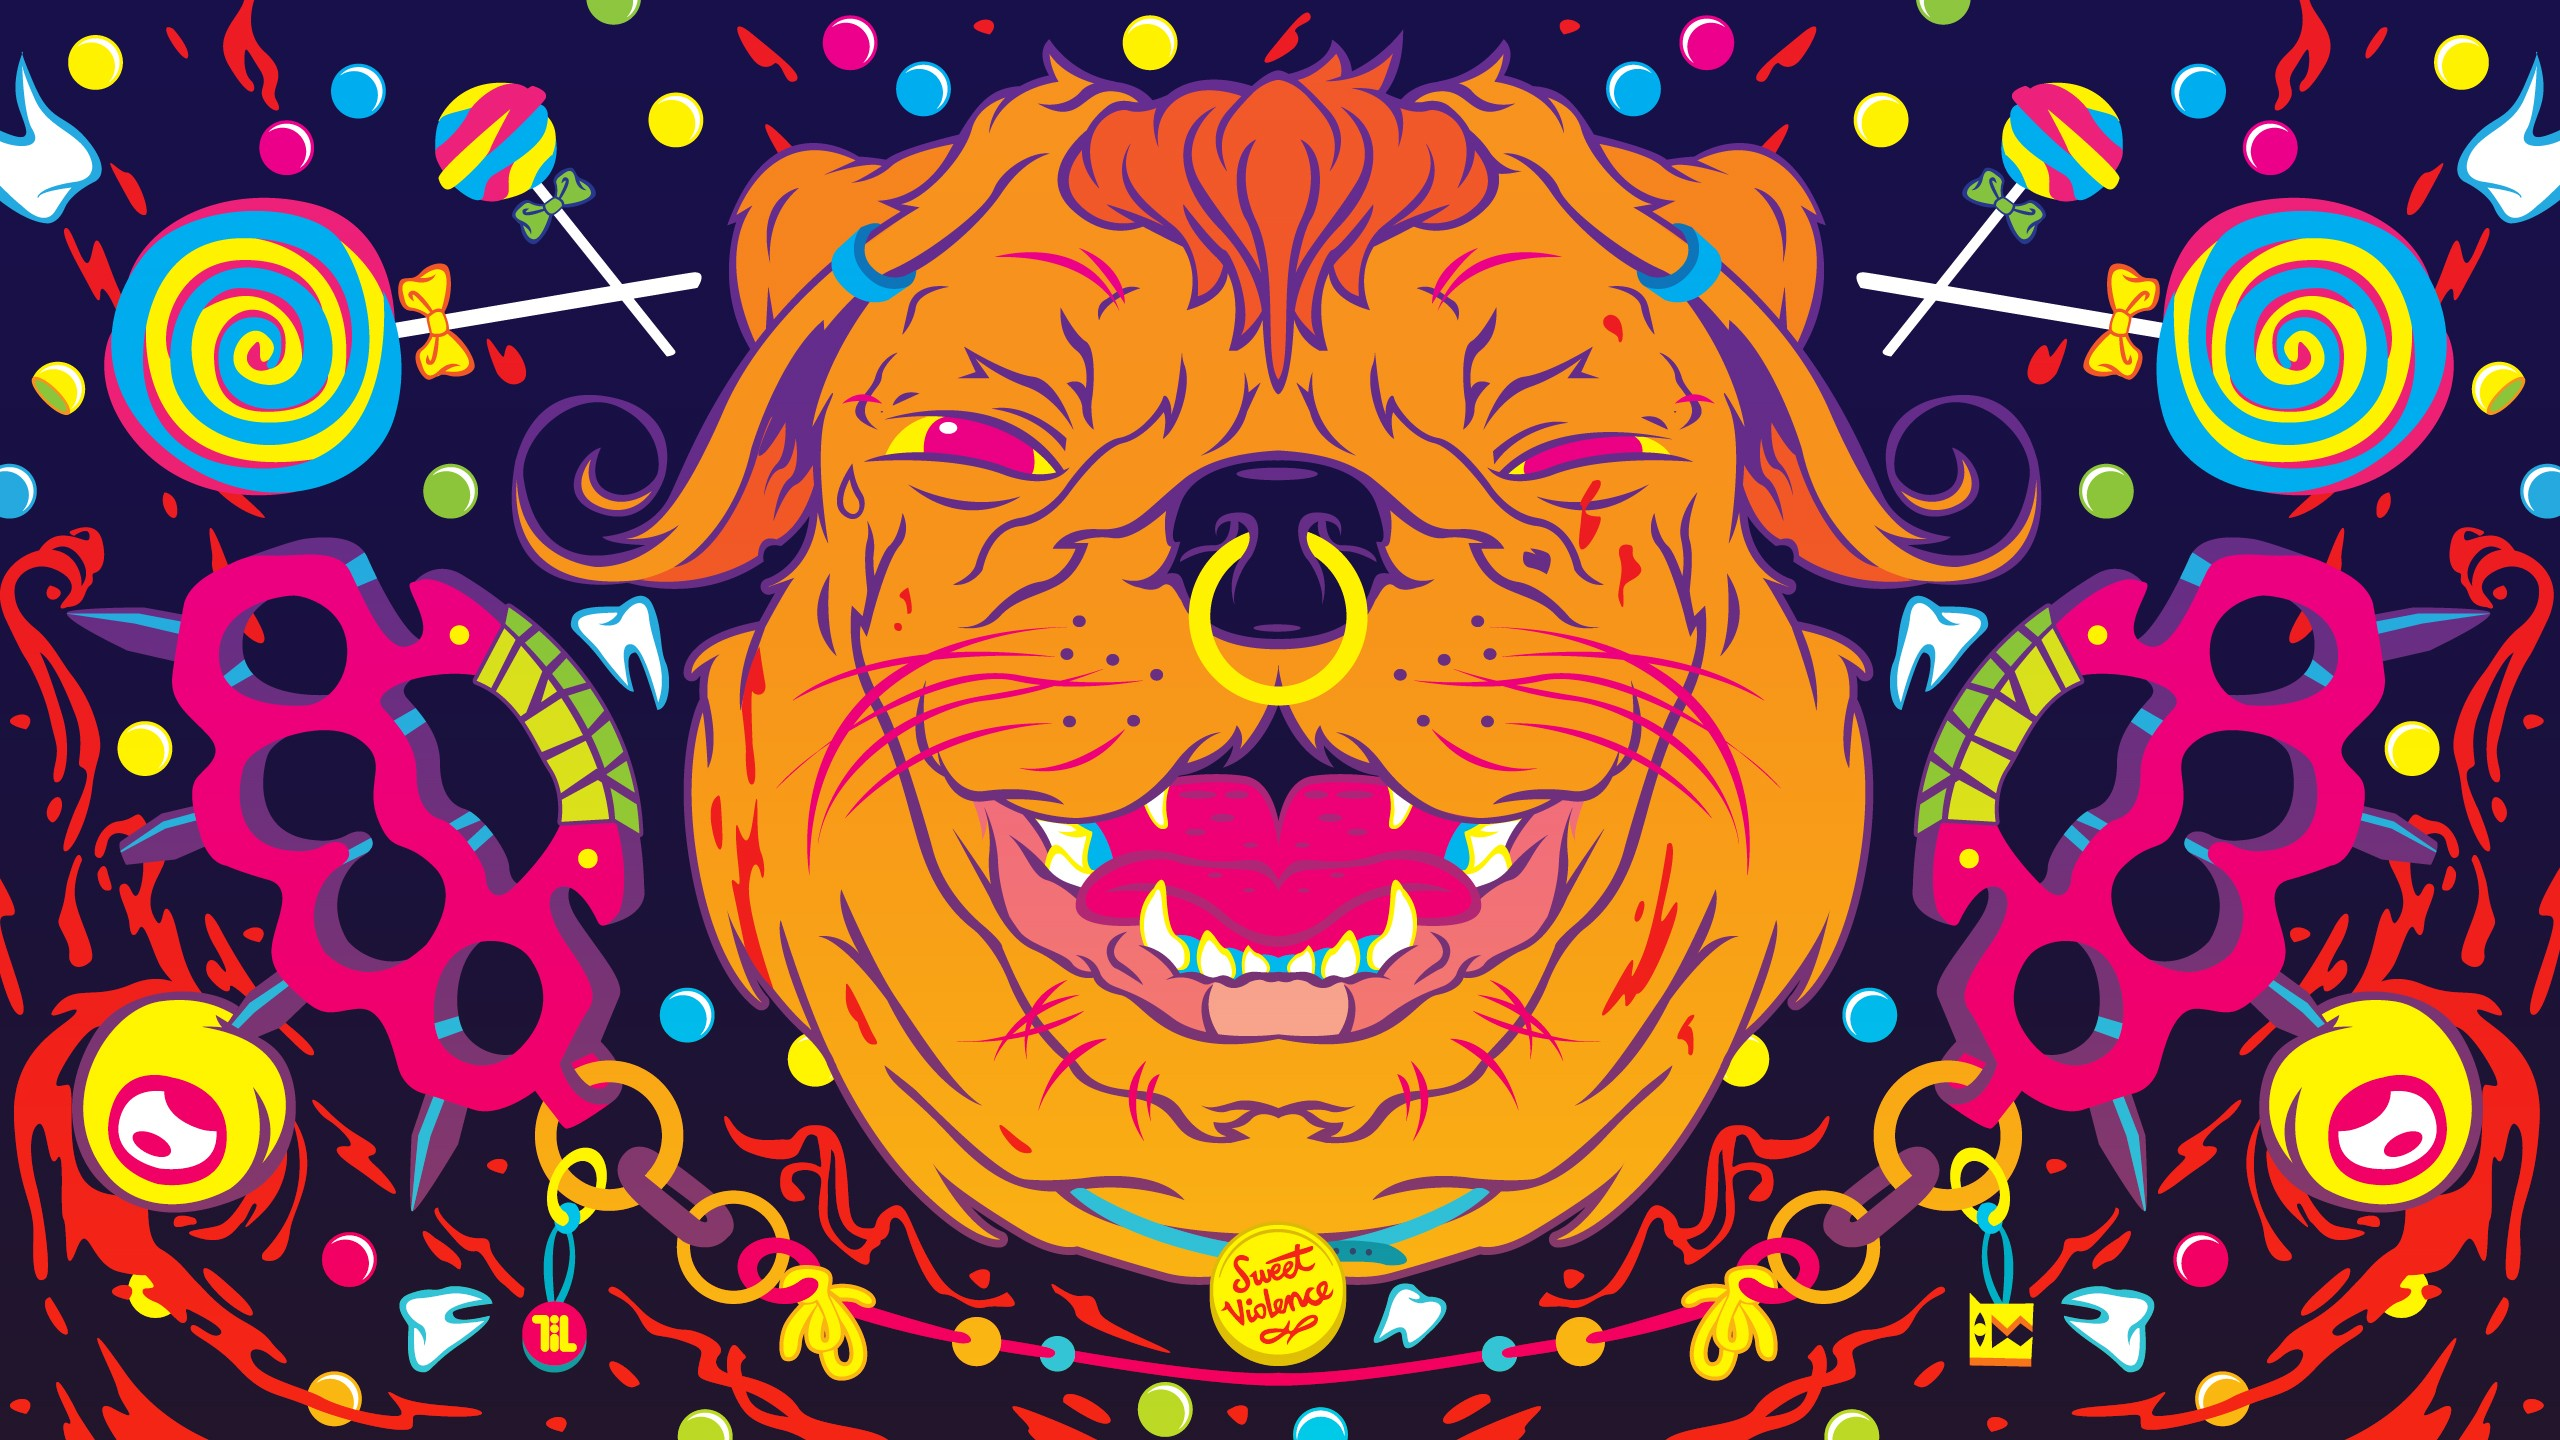 dogs psychedelic color art abstract wallpaper background 2560x1440